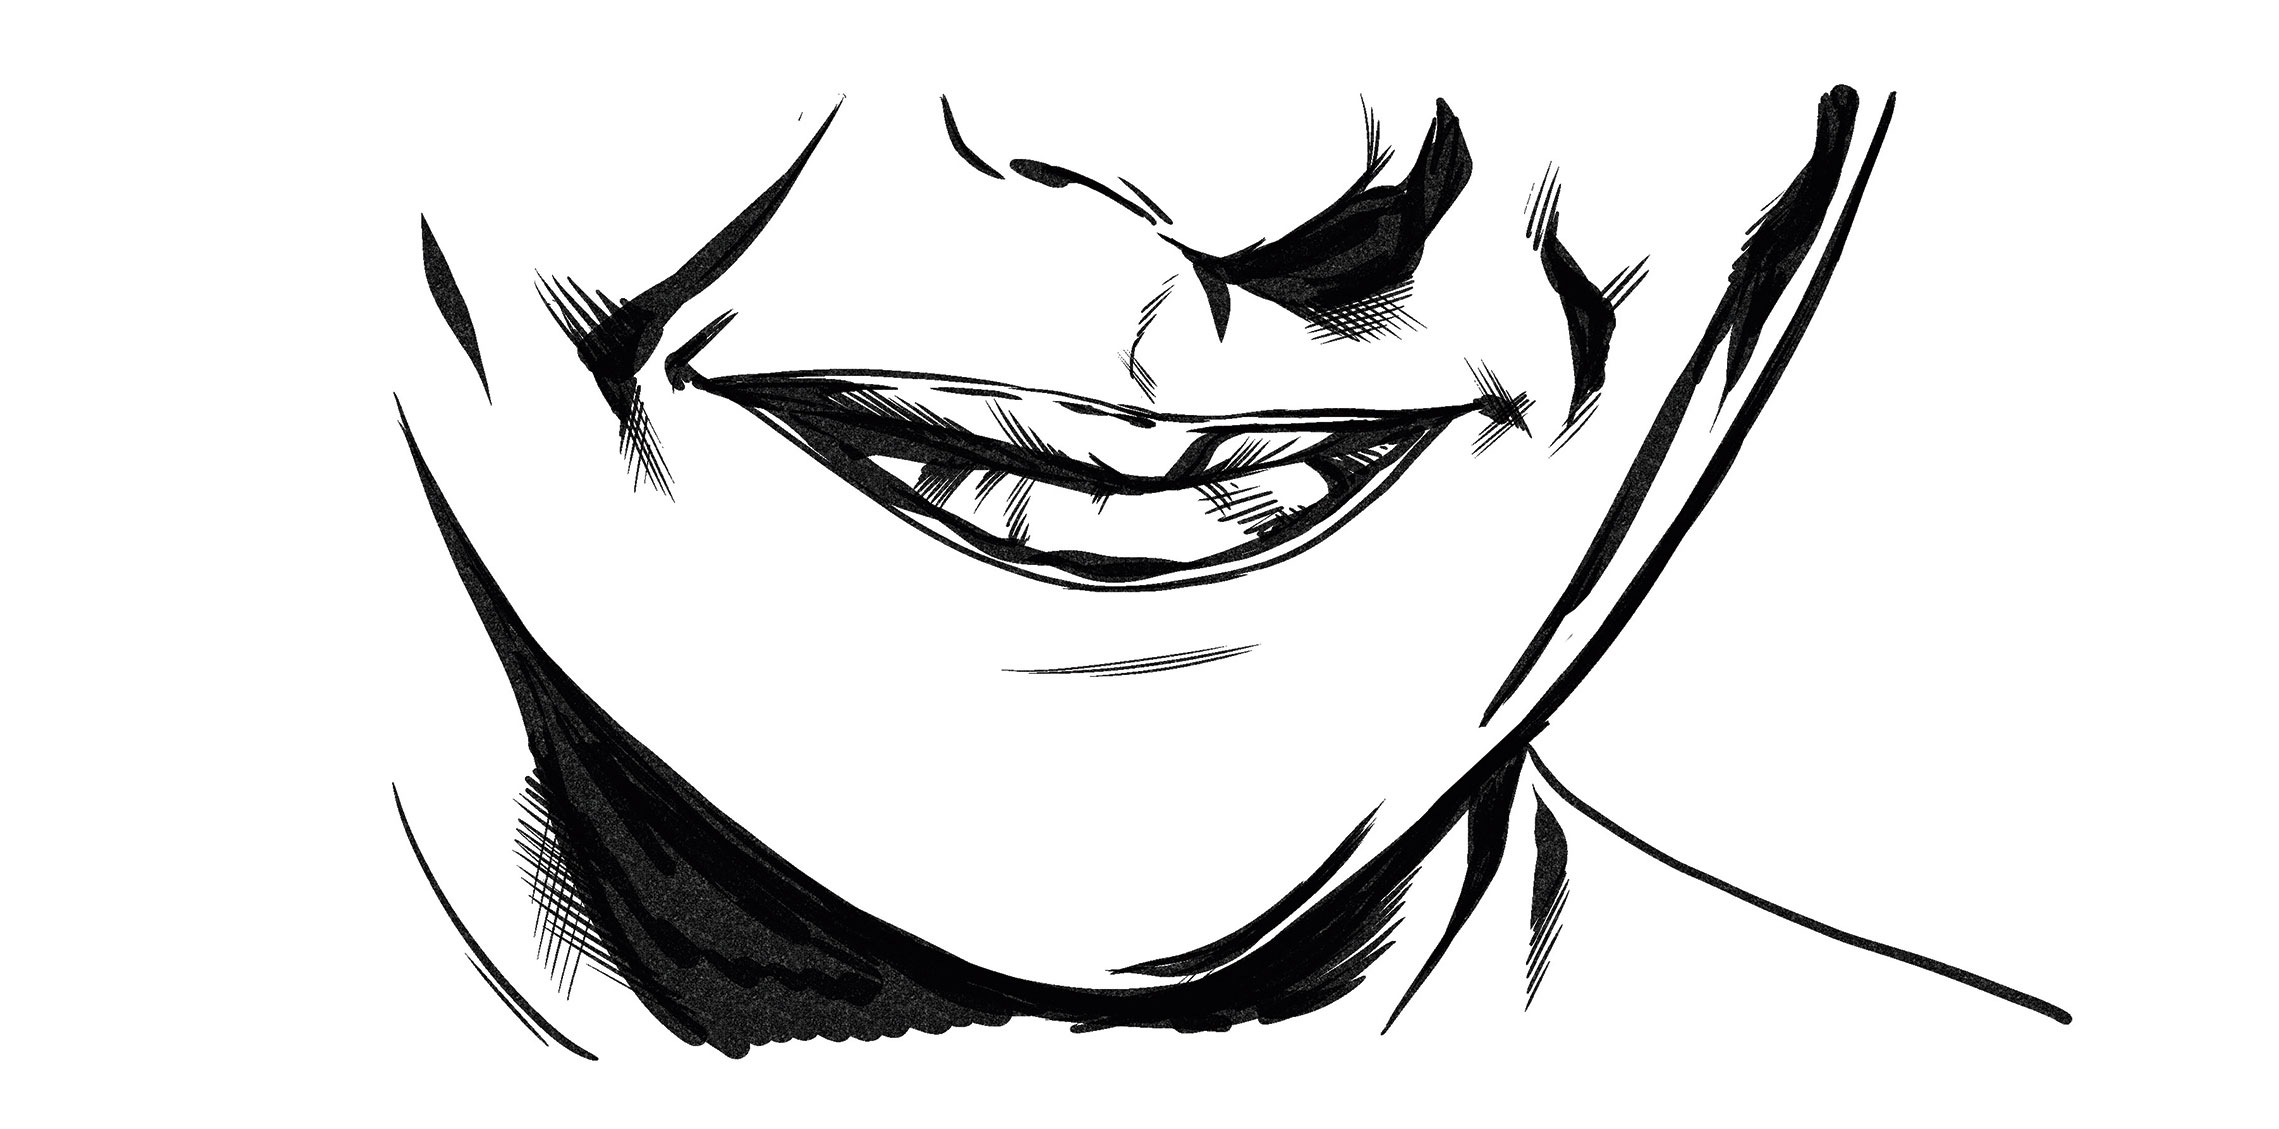 Drawing of a close up of a mouth